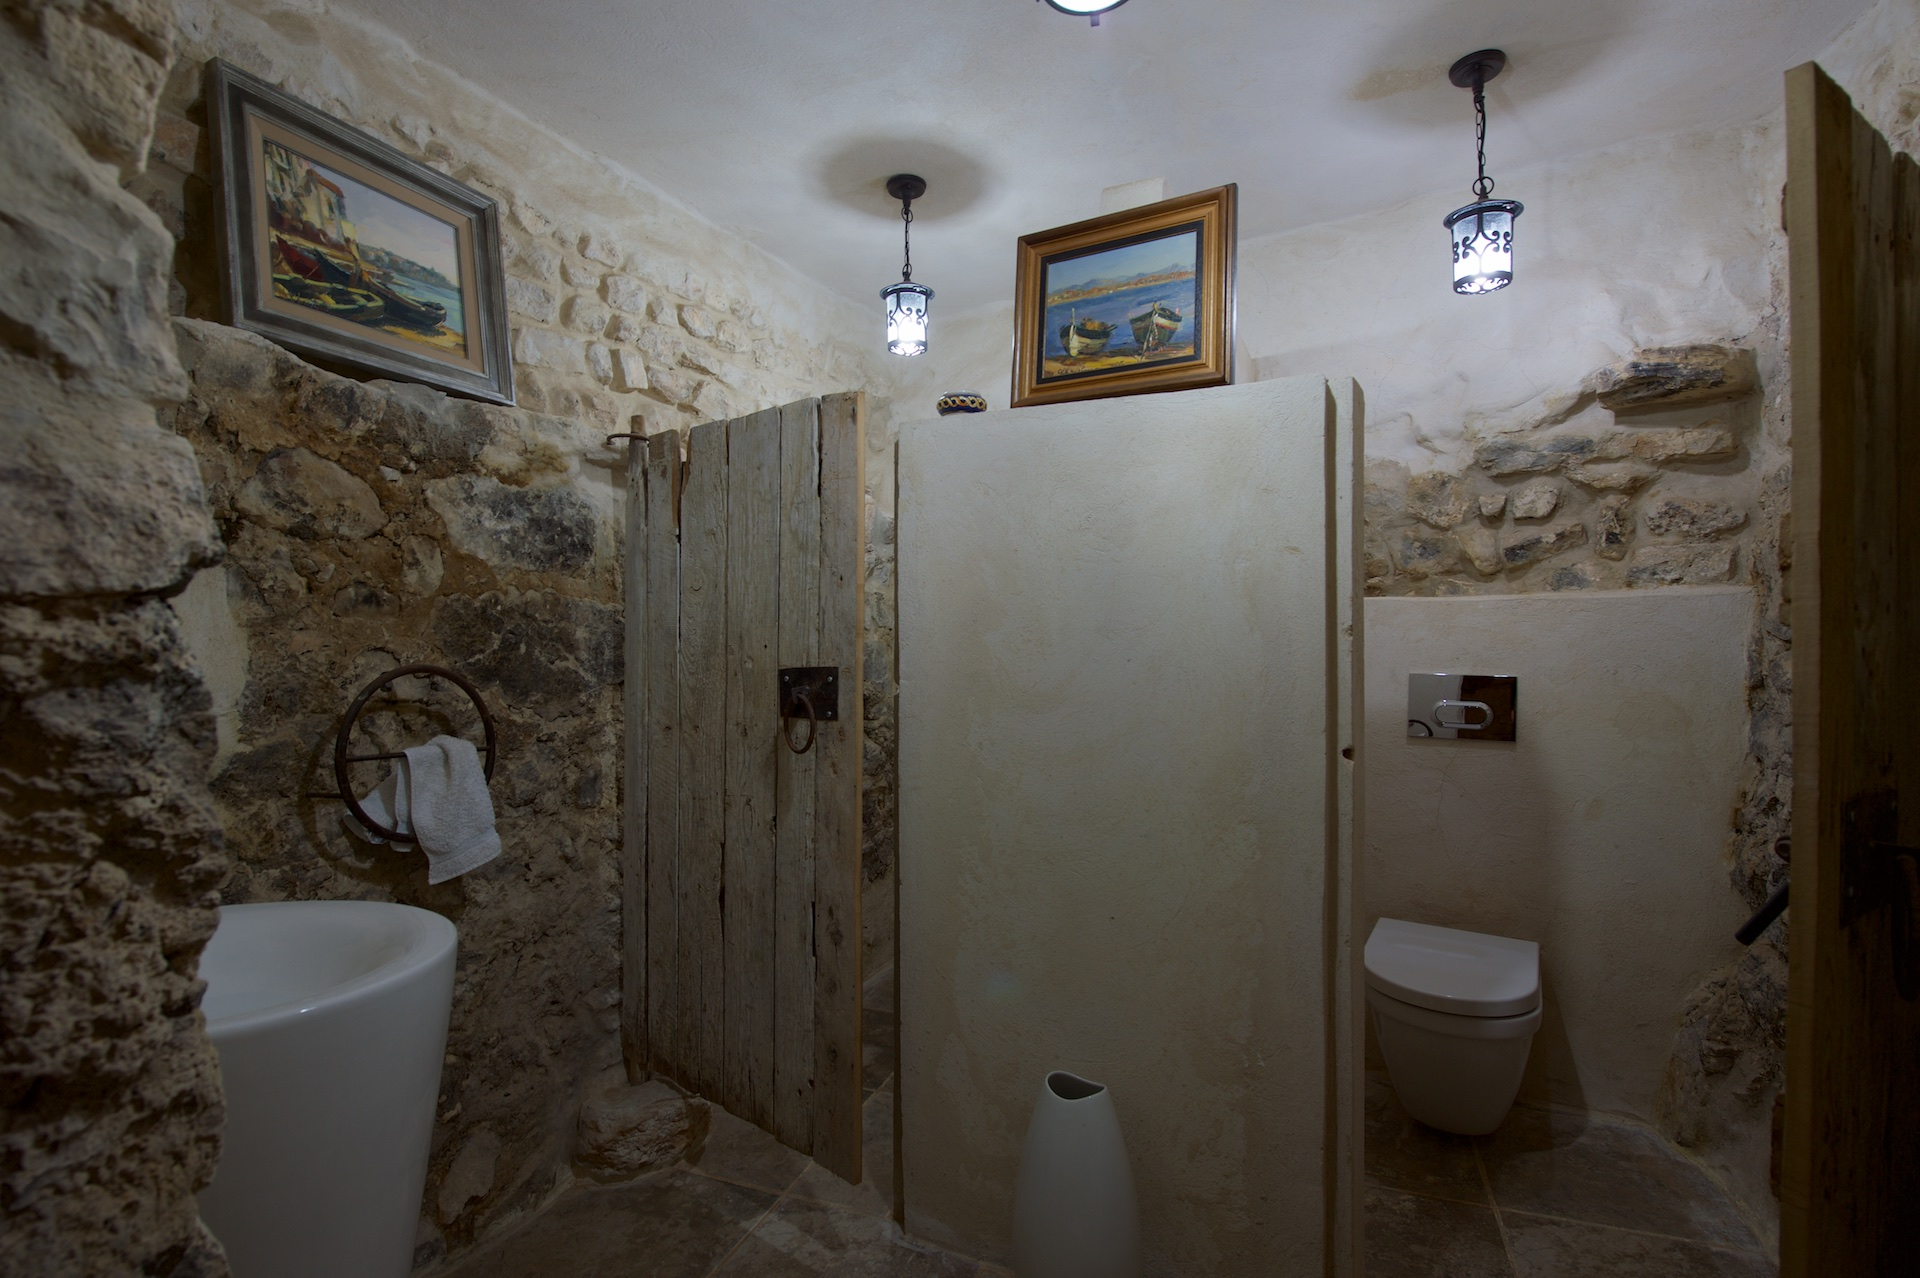 The rest-rooms